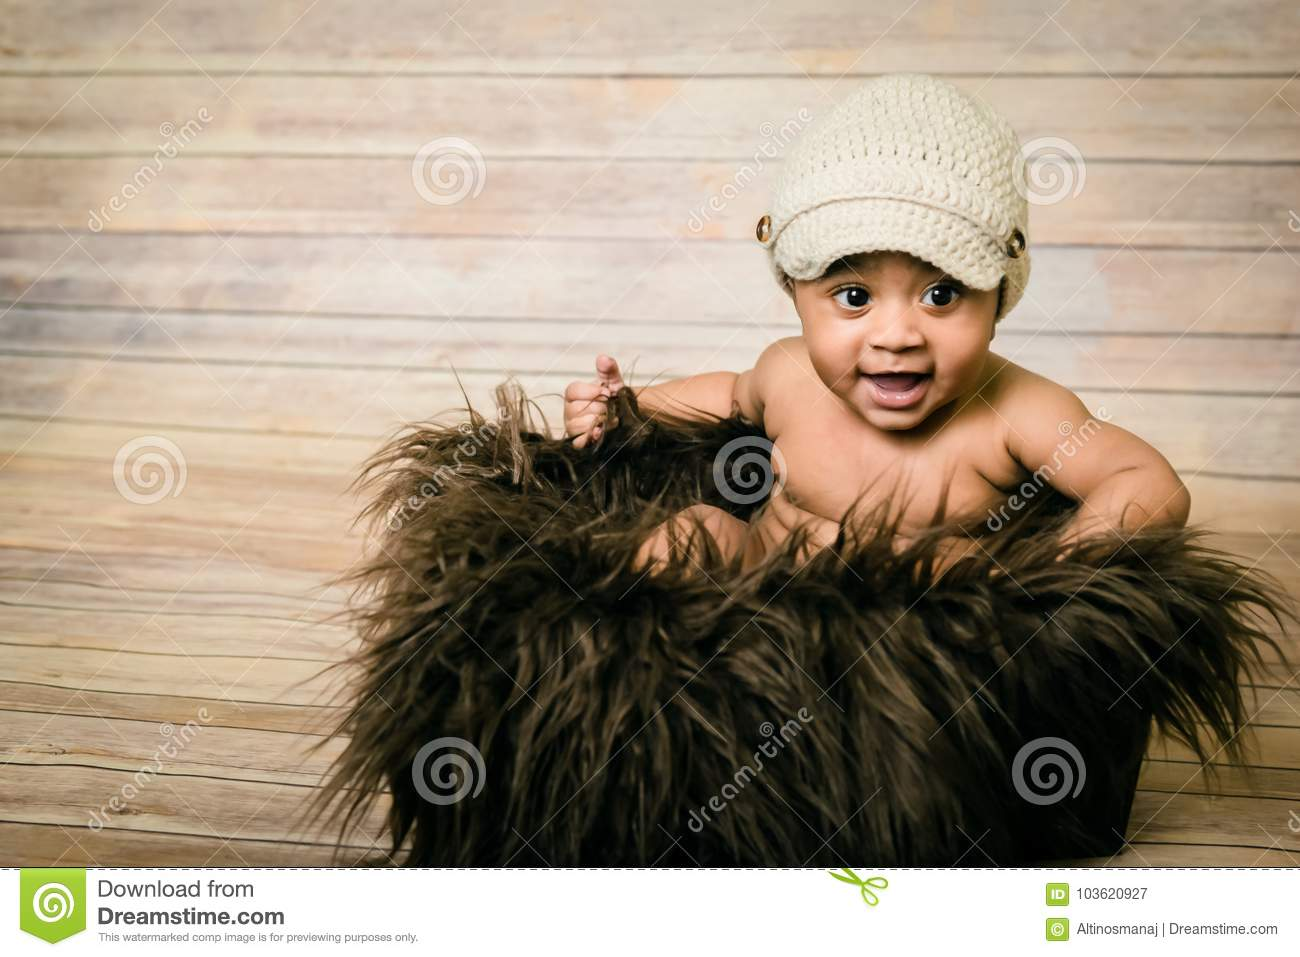 9e36845e1 Infant mixed race healthy looking baby boy wearing knitted hat sitting in a  fluffy furry basket wooden background modern studio shoot vintage look  smiling ...